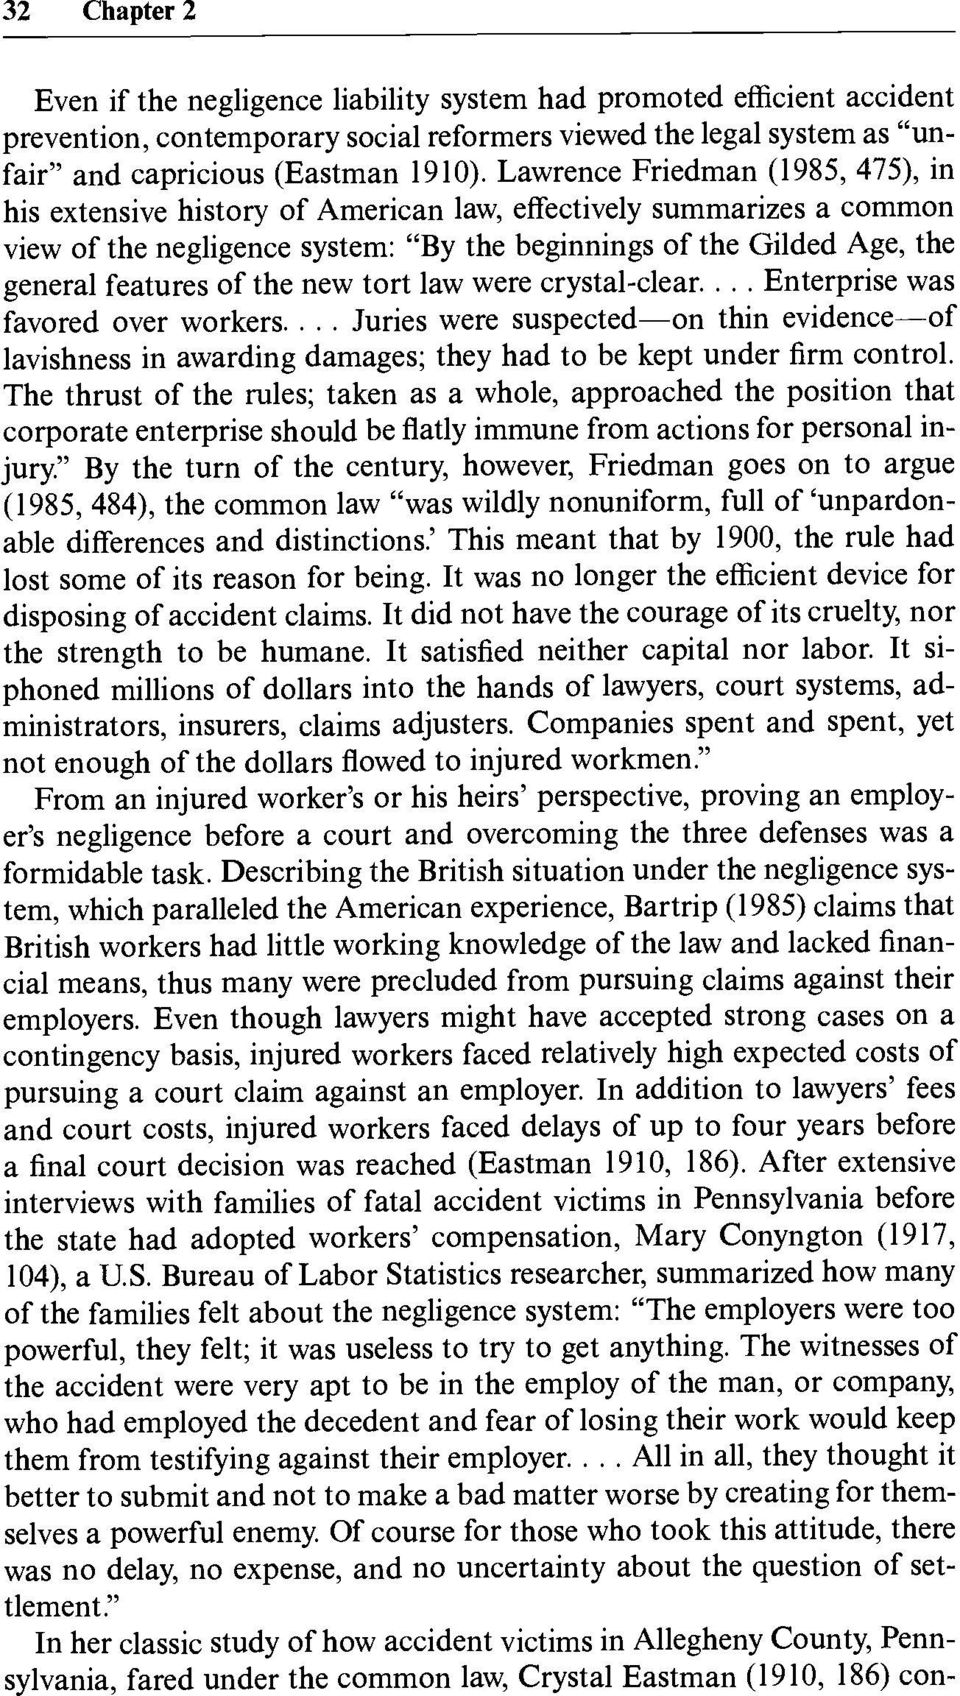 the new tort law were crystal-clear.... Enterprise was favored over workers.... Juries were suspectedon thin evidence of lavishness in awarding damages; they had to be kept under firm control.